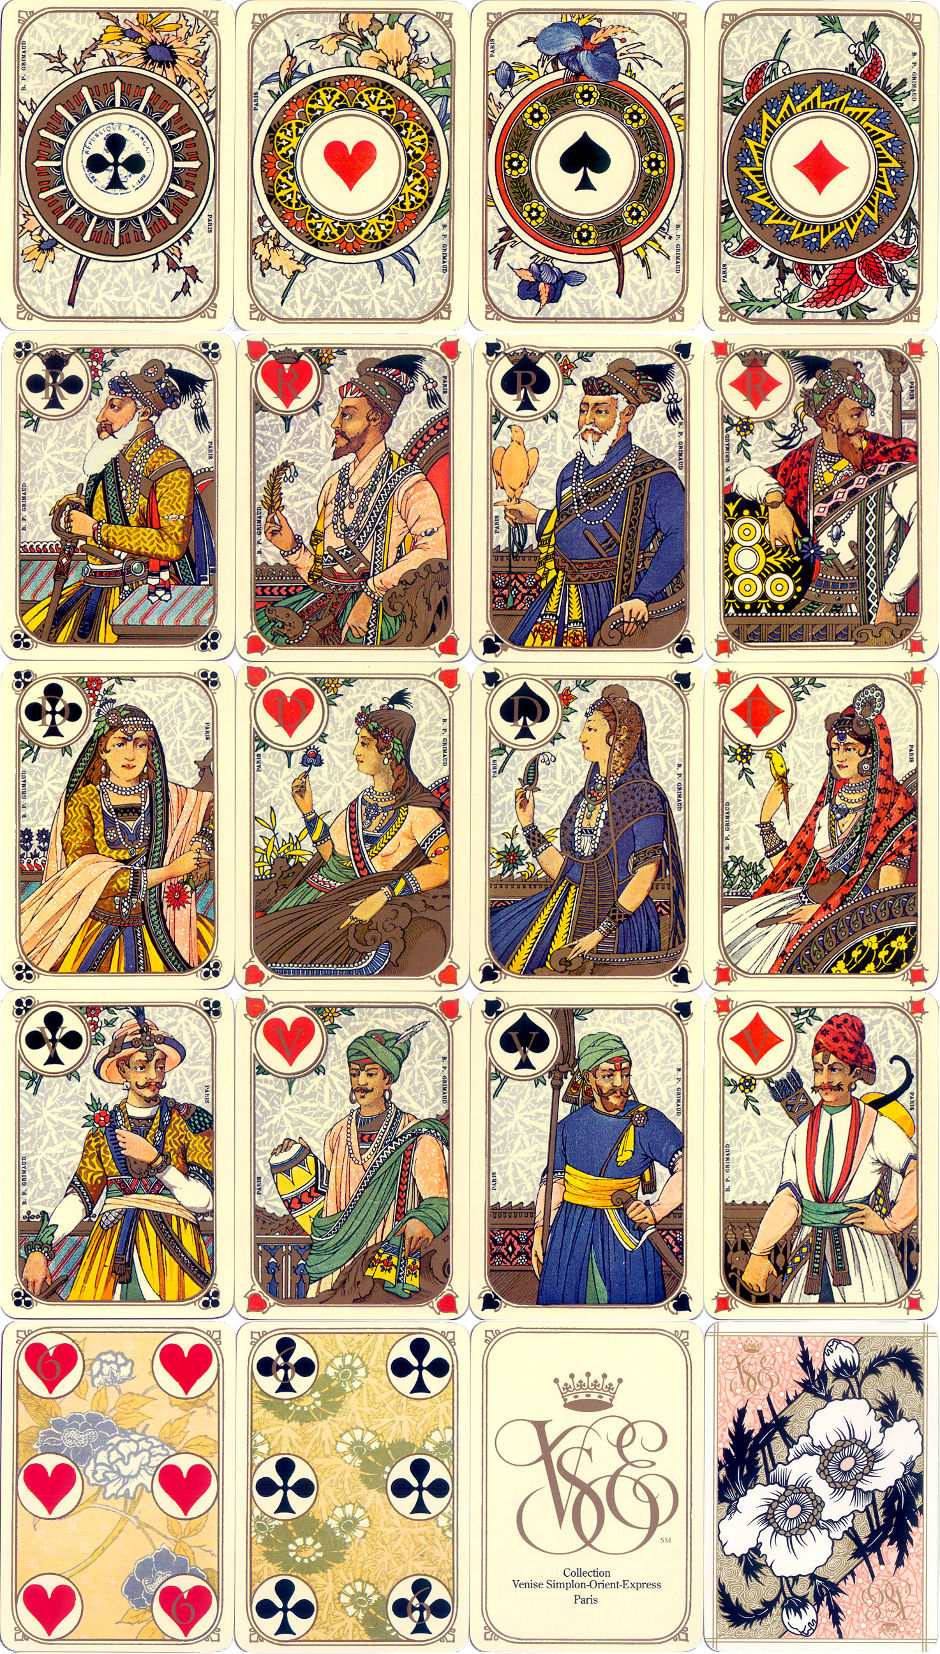 Venise-Simplon Orient Express Playing Cards produced by B.P. Grimaud, Paris